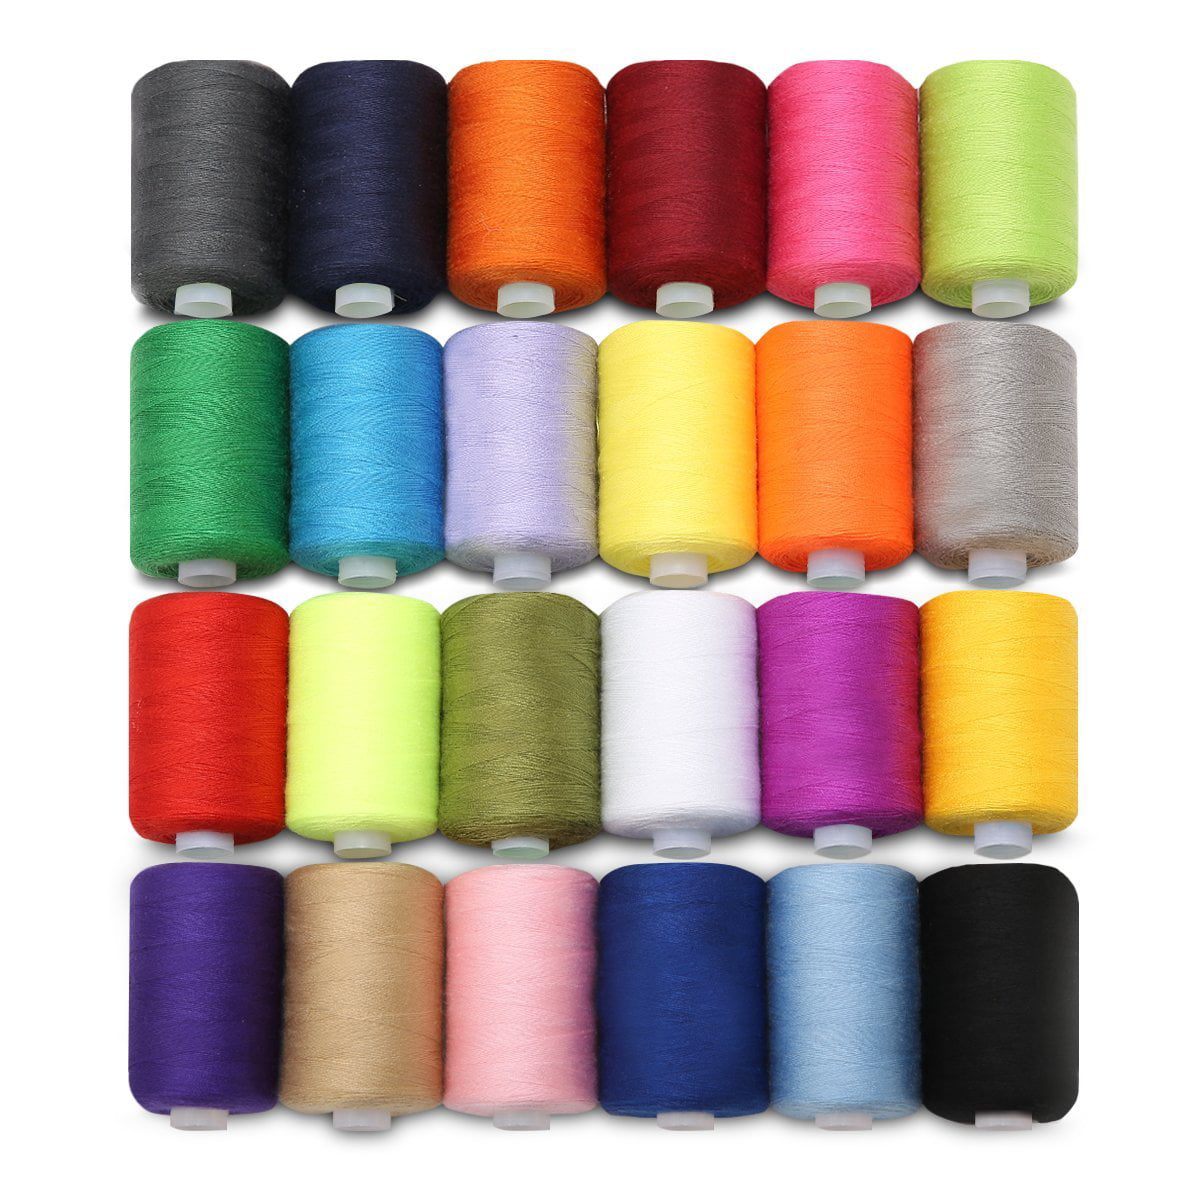 PRETYZOOM Sewing Thread Kit Polyester Yarn Coils Kits Colorful Sewing Threads Polyester Spool for Machine Sewing DIY Clothes Handmade Sewing Craft Supplies 12pcs